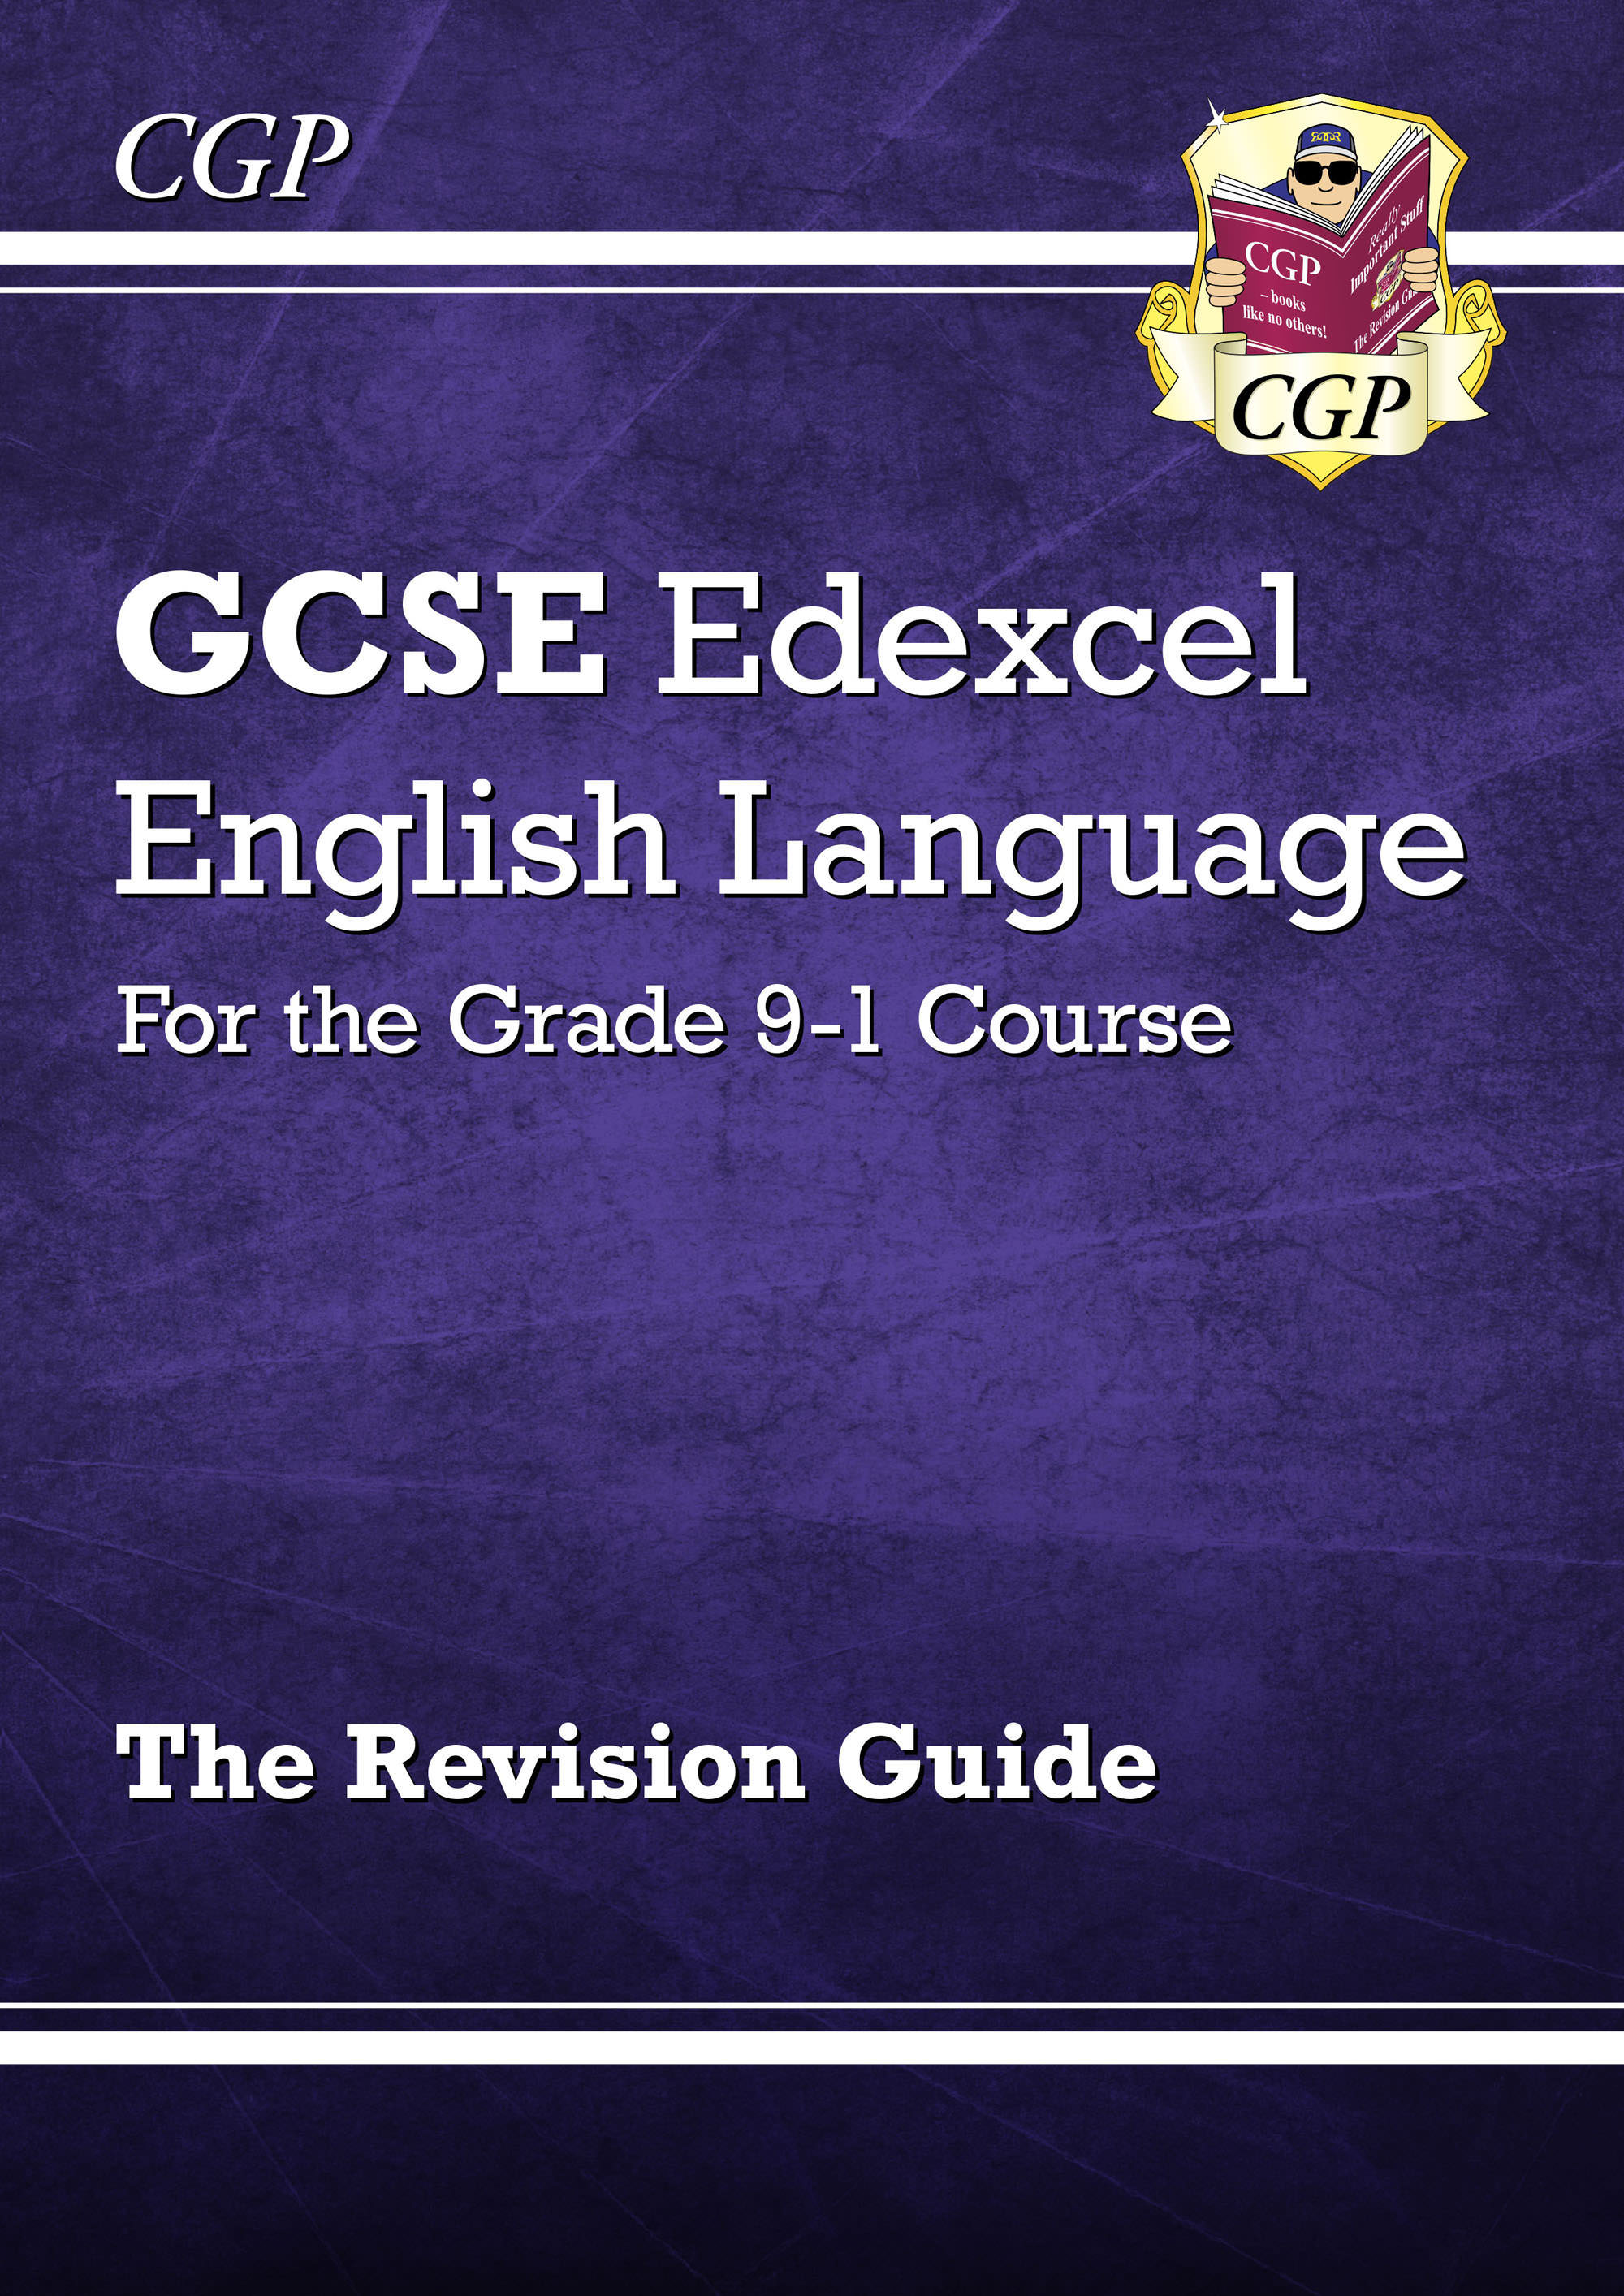 ENER41DK - New GCSE English Language Edexcel Revision Guide - for the Grade 9-1 Course